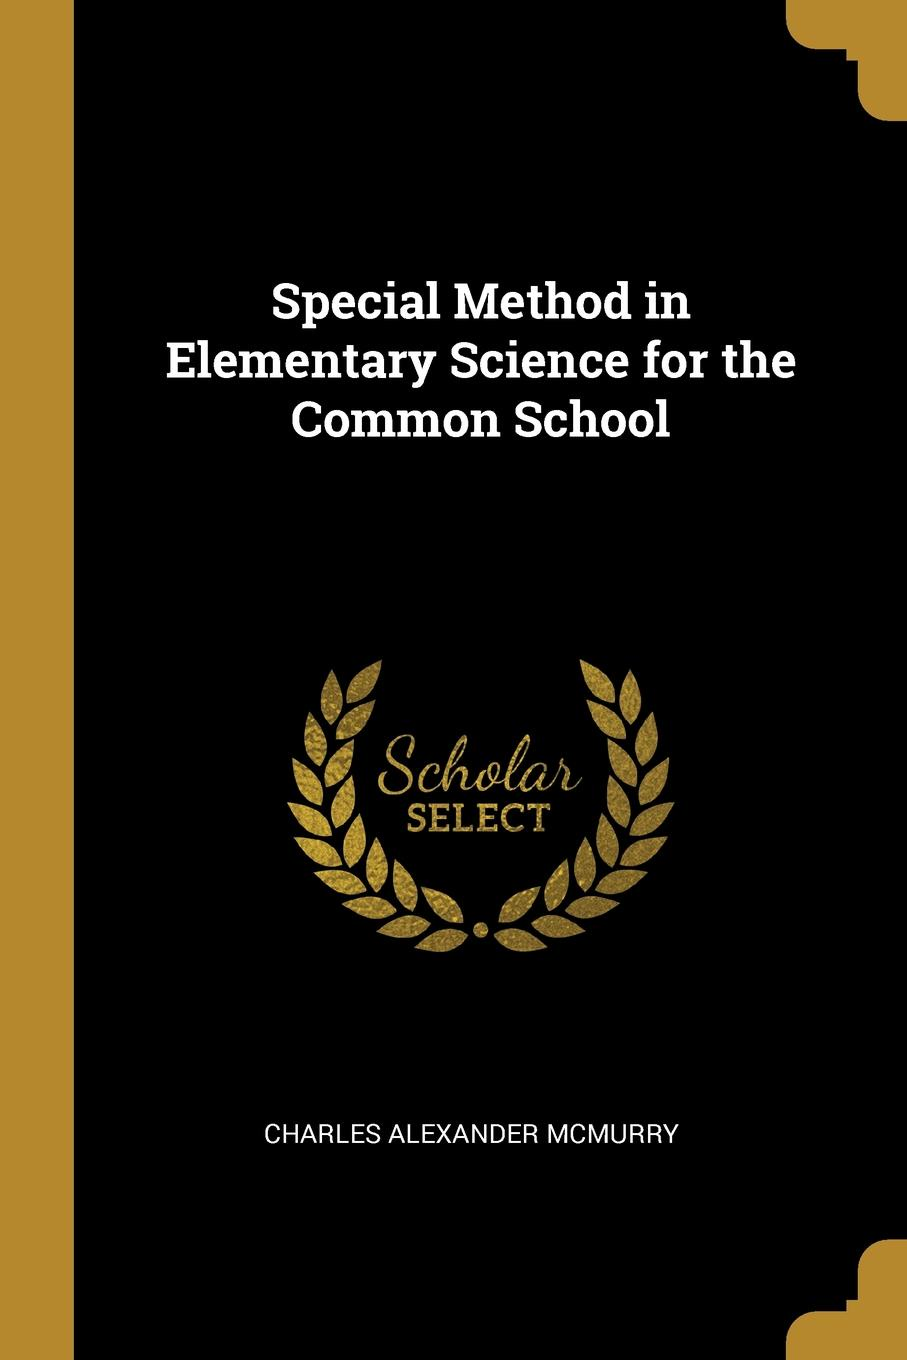 Charles Alexander McMurry. Special Method in Elementary Science for the Common School